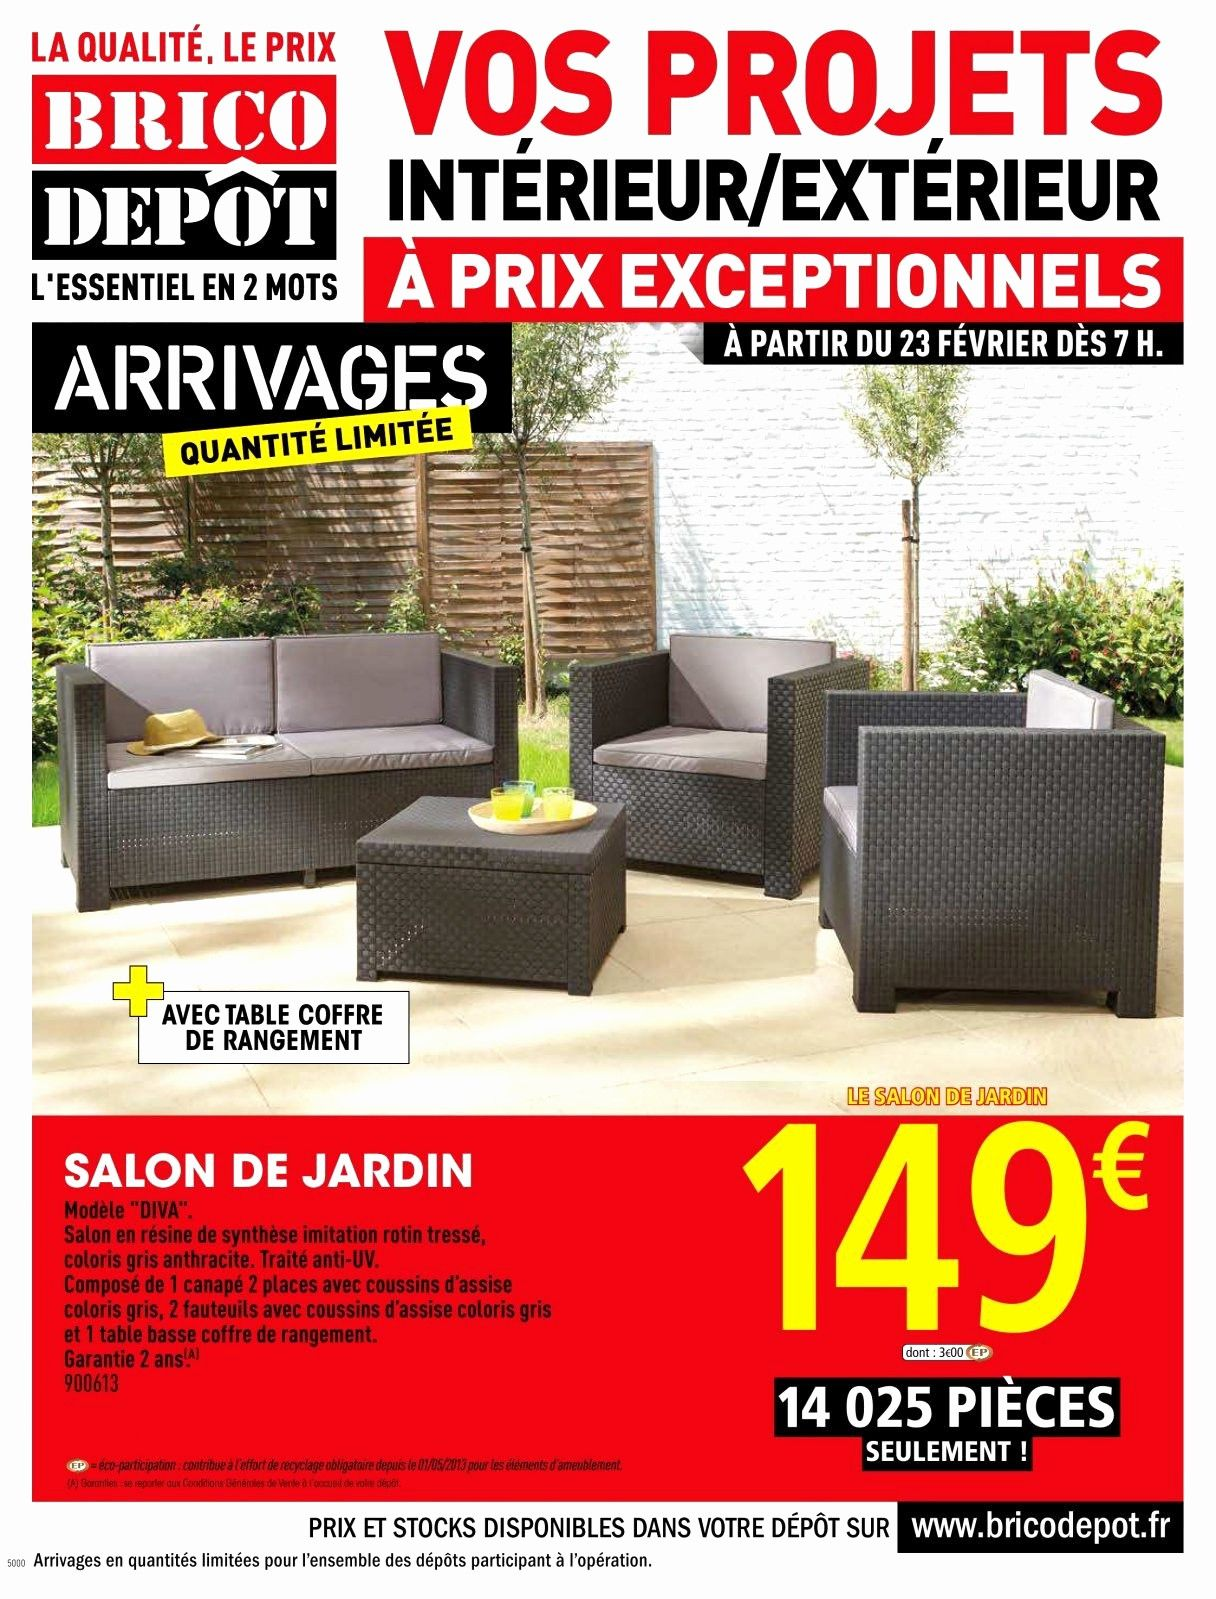 Elegant Barriere De Securite Brico Depot Salon De Jardin Salon